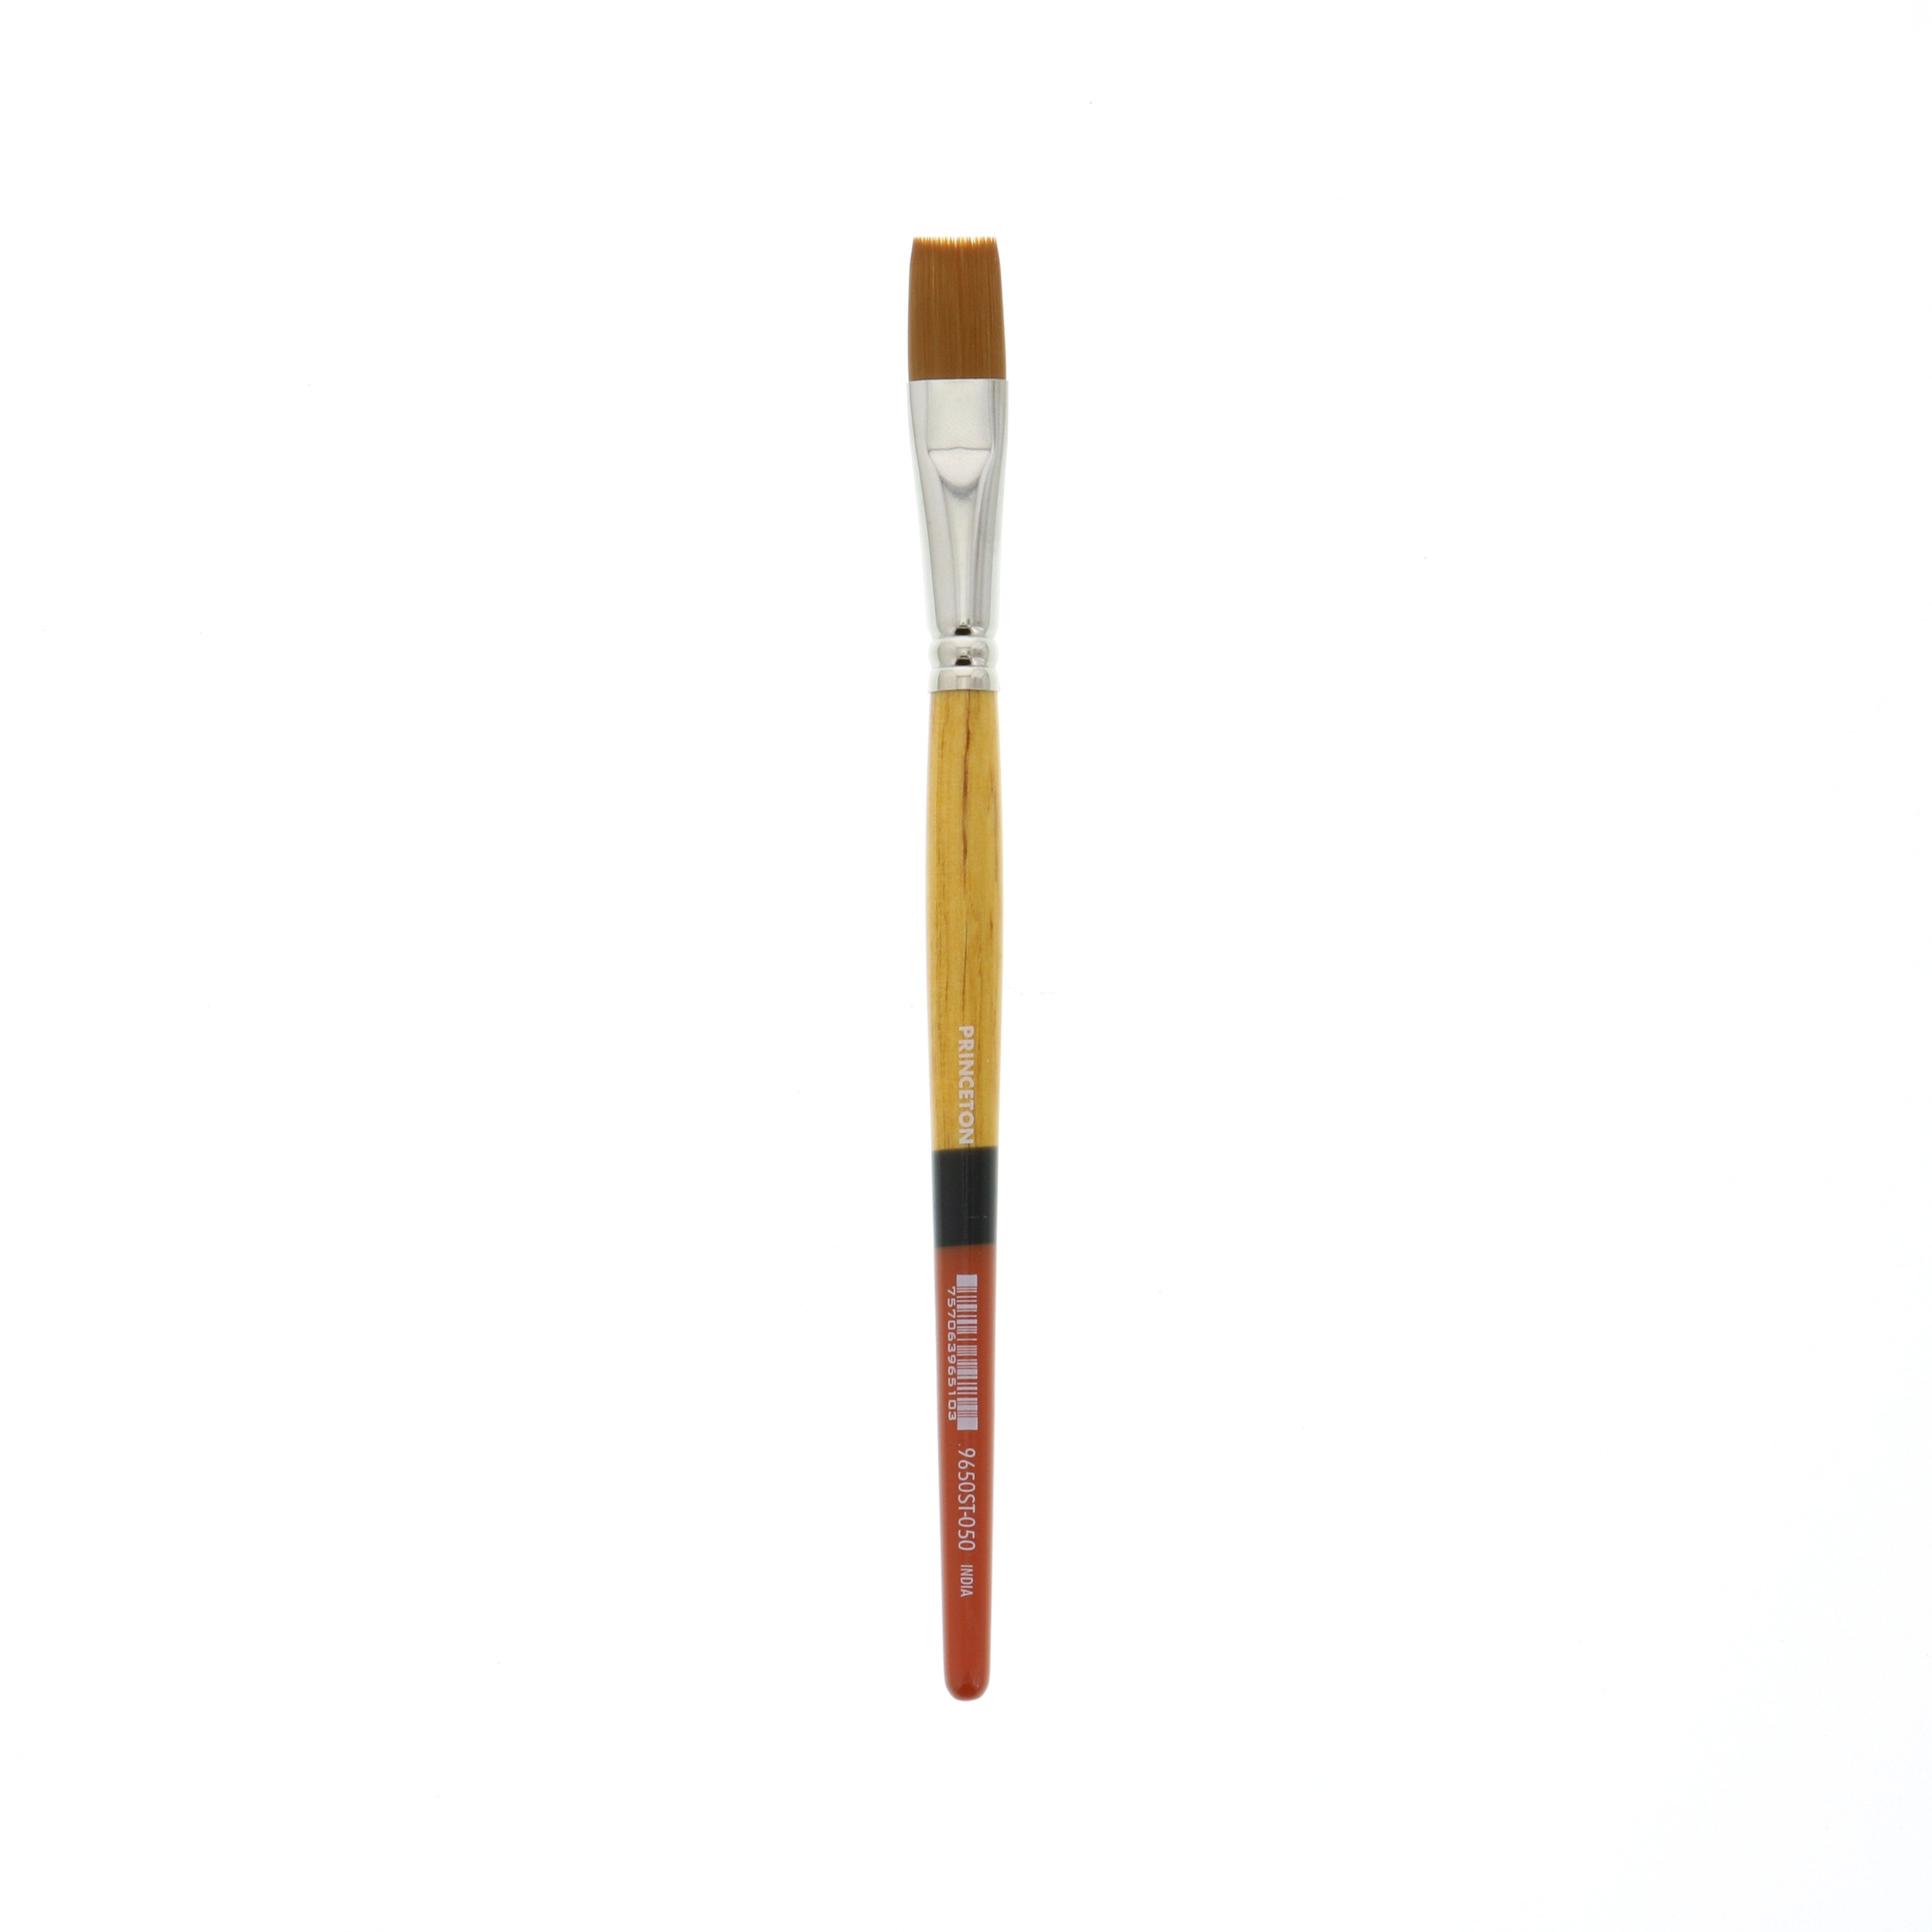 Princeton Brush Snap Gold Taklon Brush, Stroke 1/2""